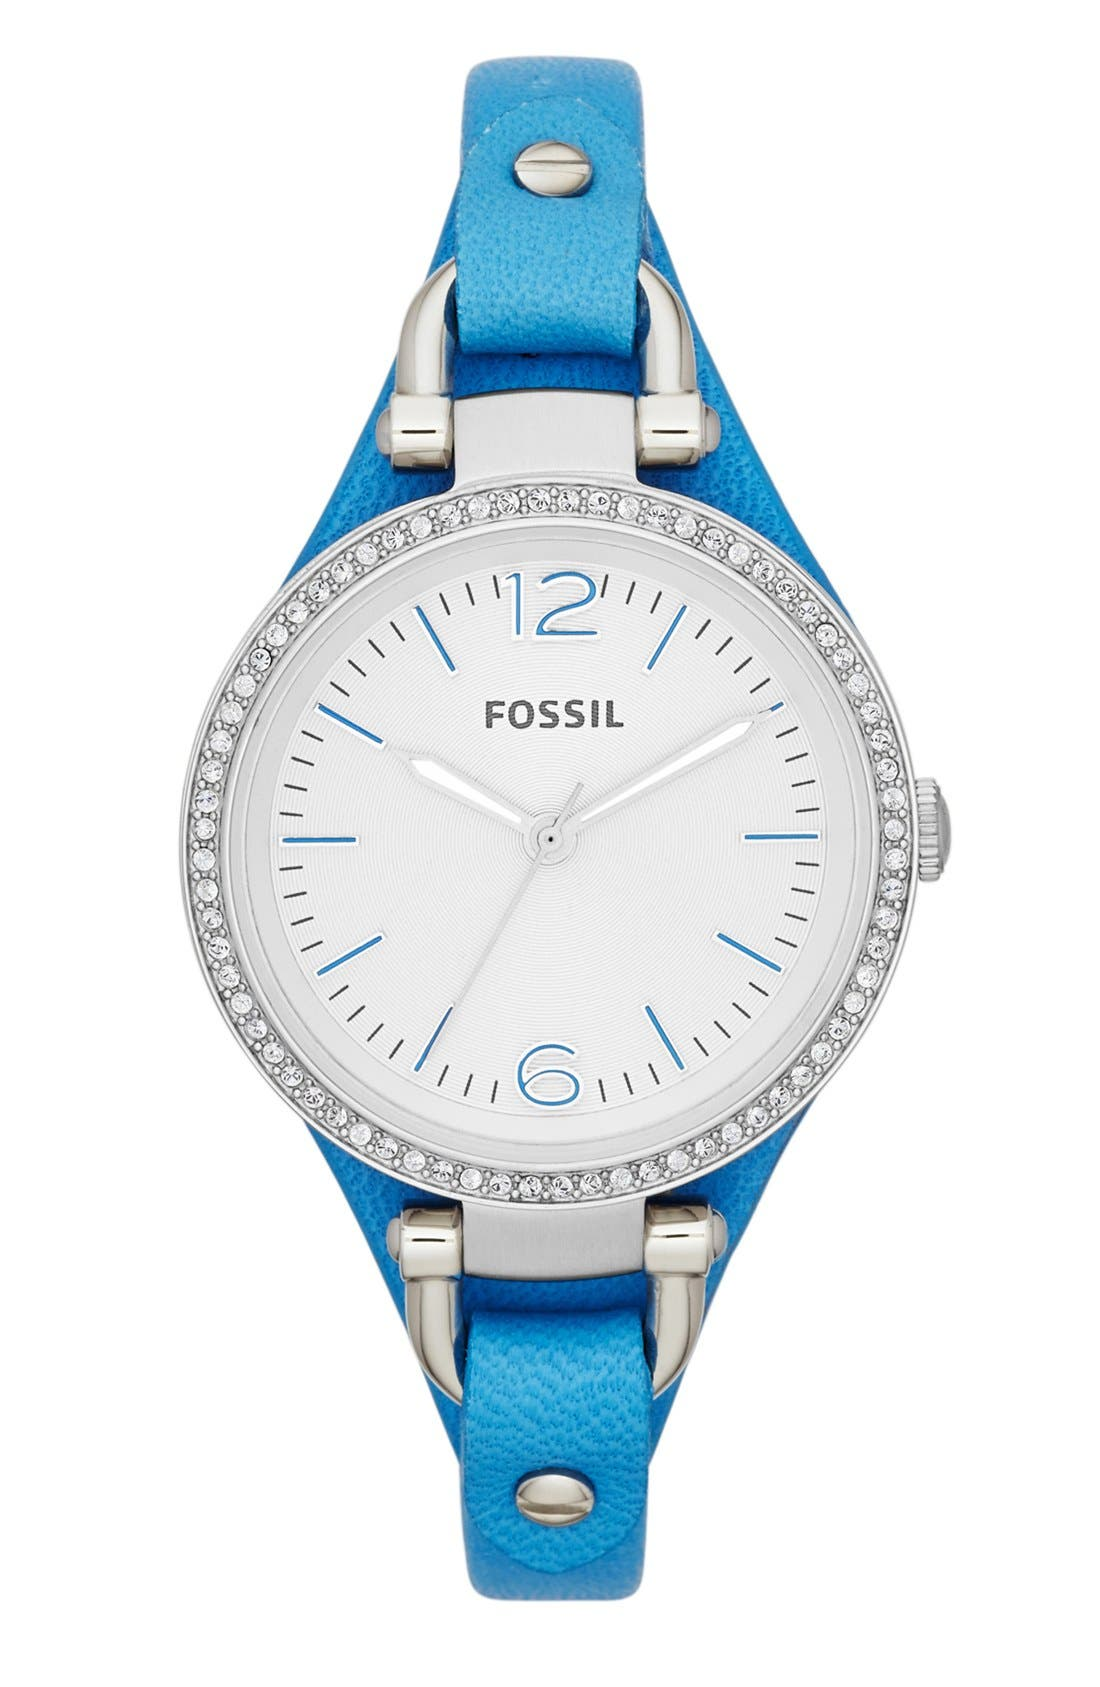 Main Image - Fossil 'Georgia' Crystal Bezel Leather Strap Watch, 32mm